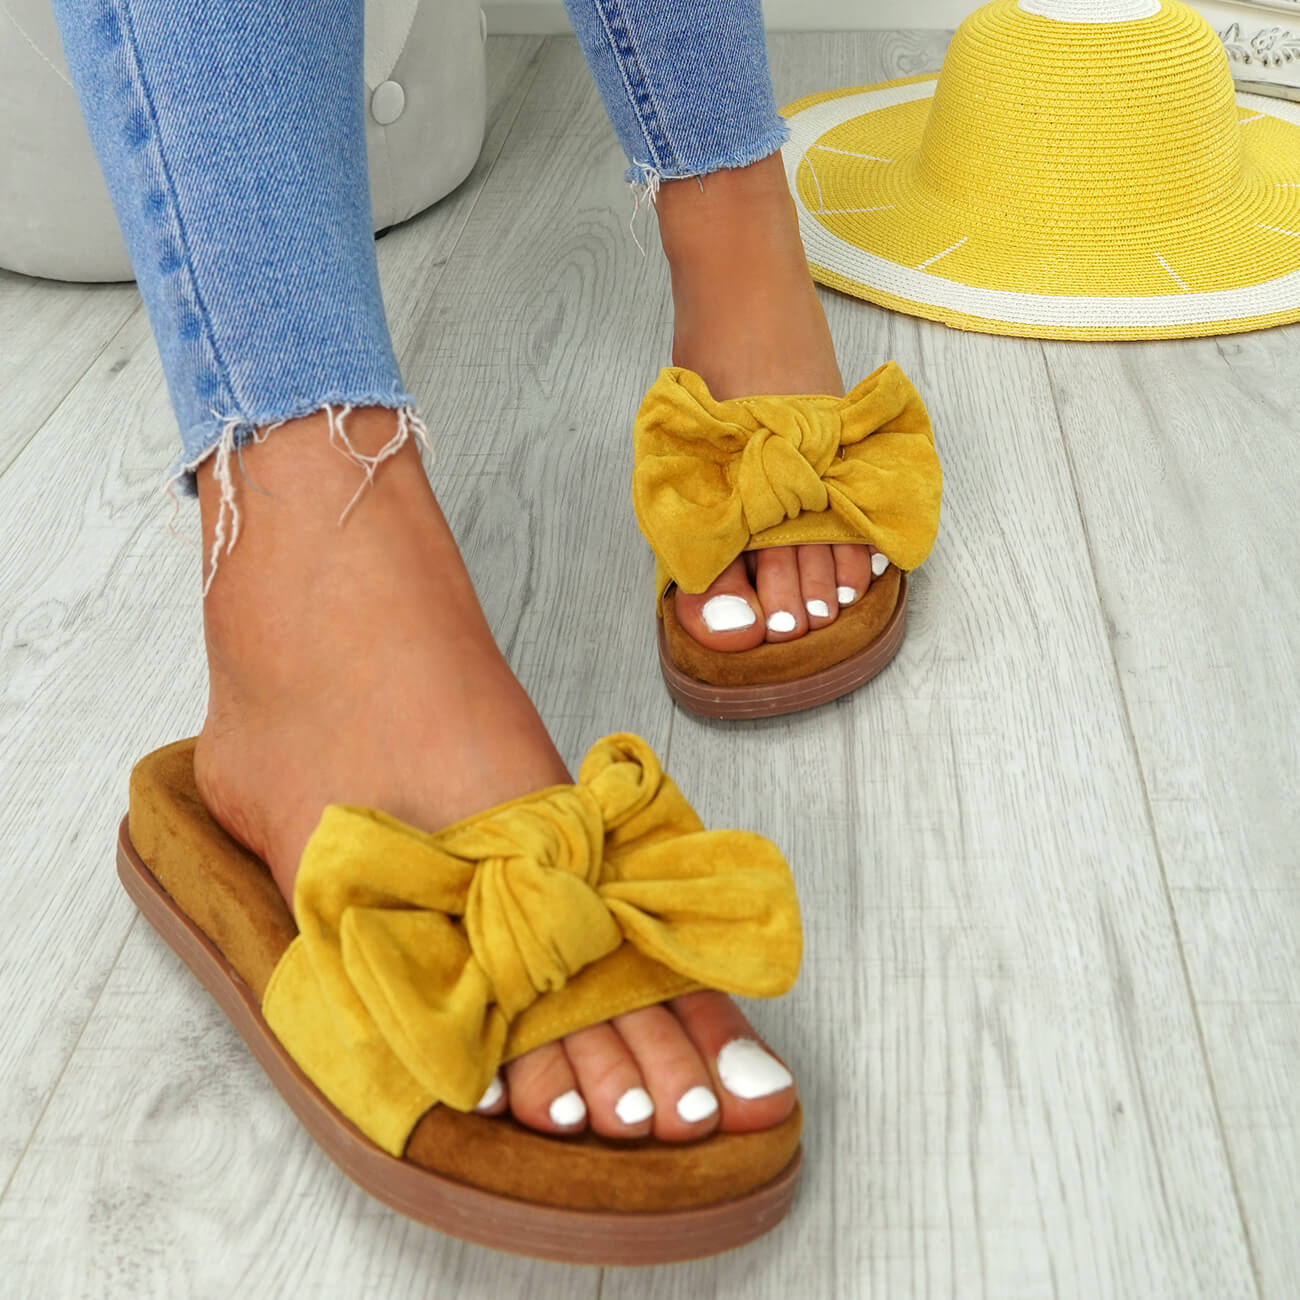 WOMENS-LADIES-FLAT-SANDALS-FRONT-BOW-COMFY-SUMMER-CASUAL-HOLIDAY-SHOES-SIZE-UK thumbnail 30